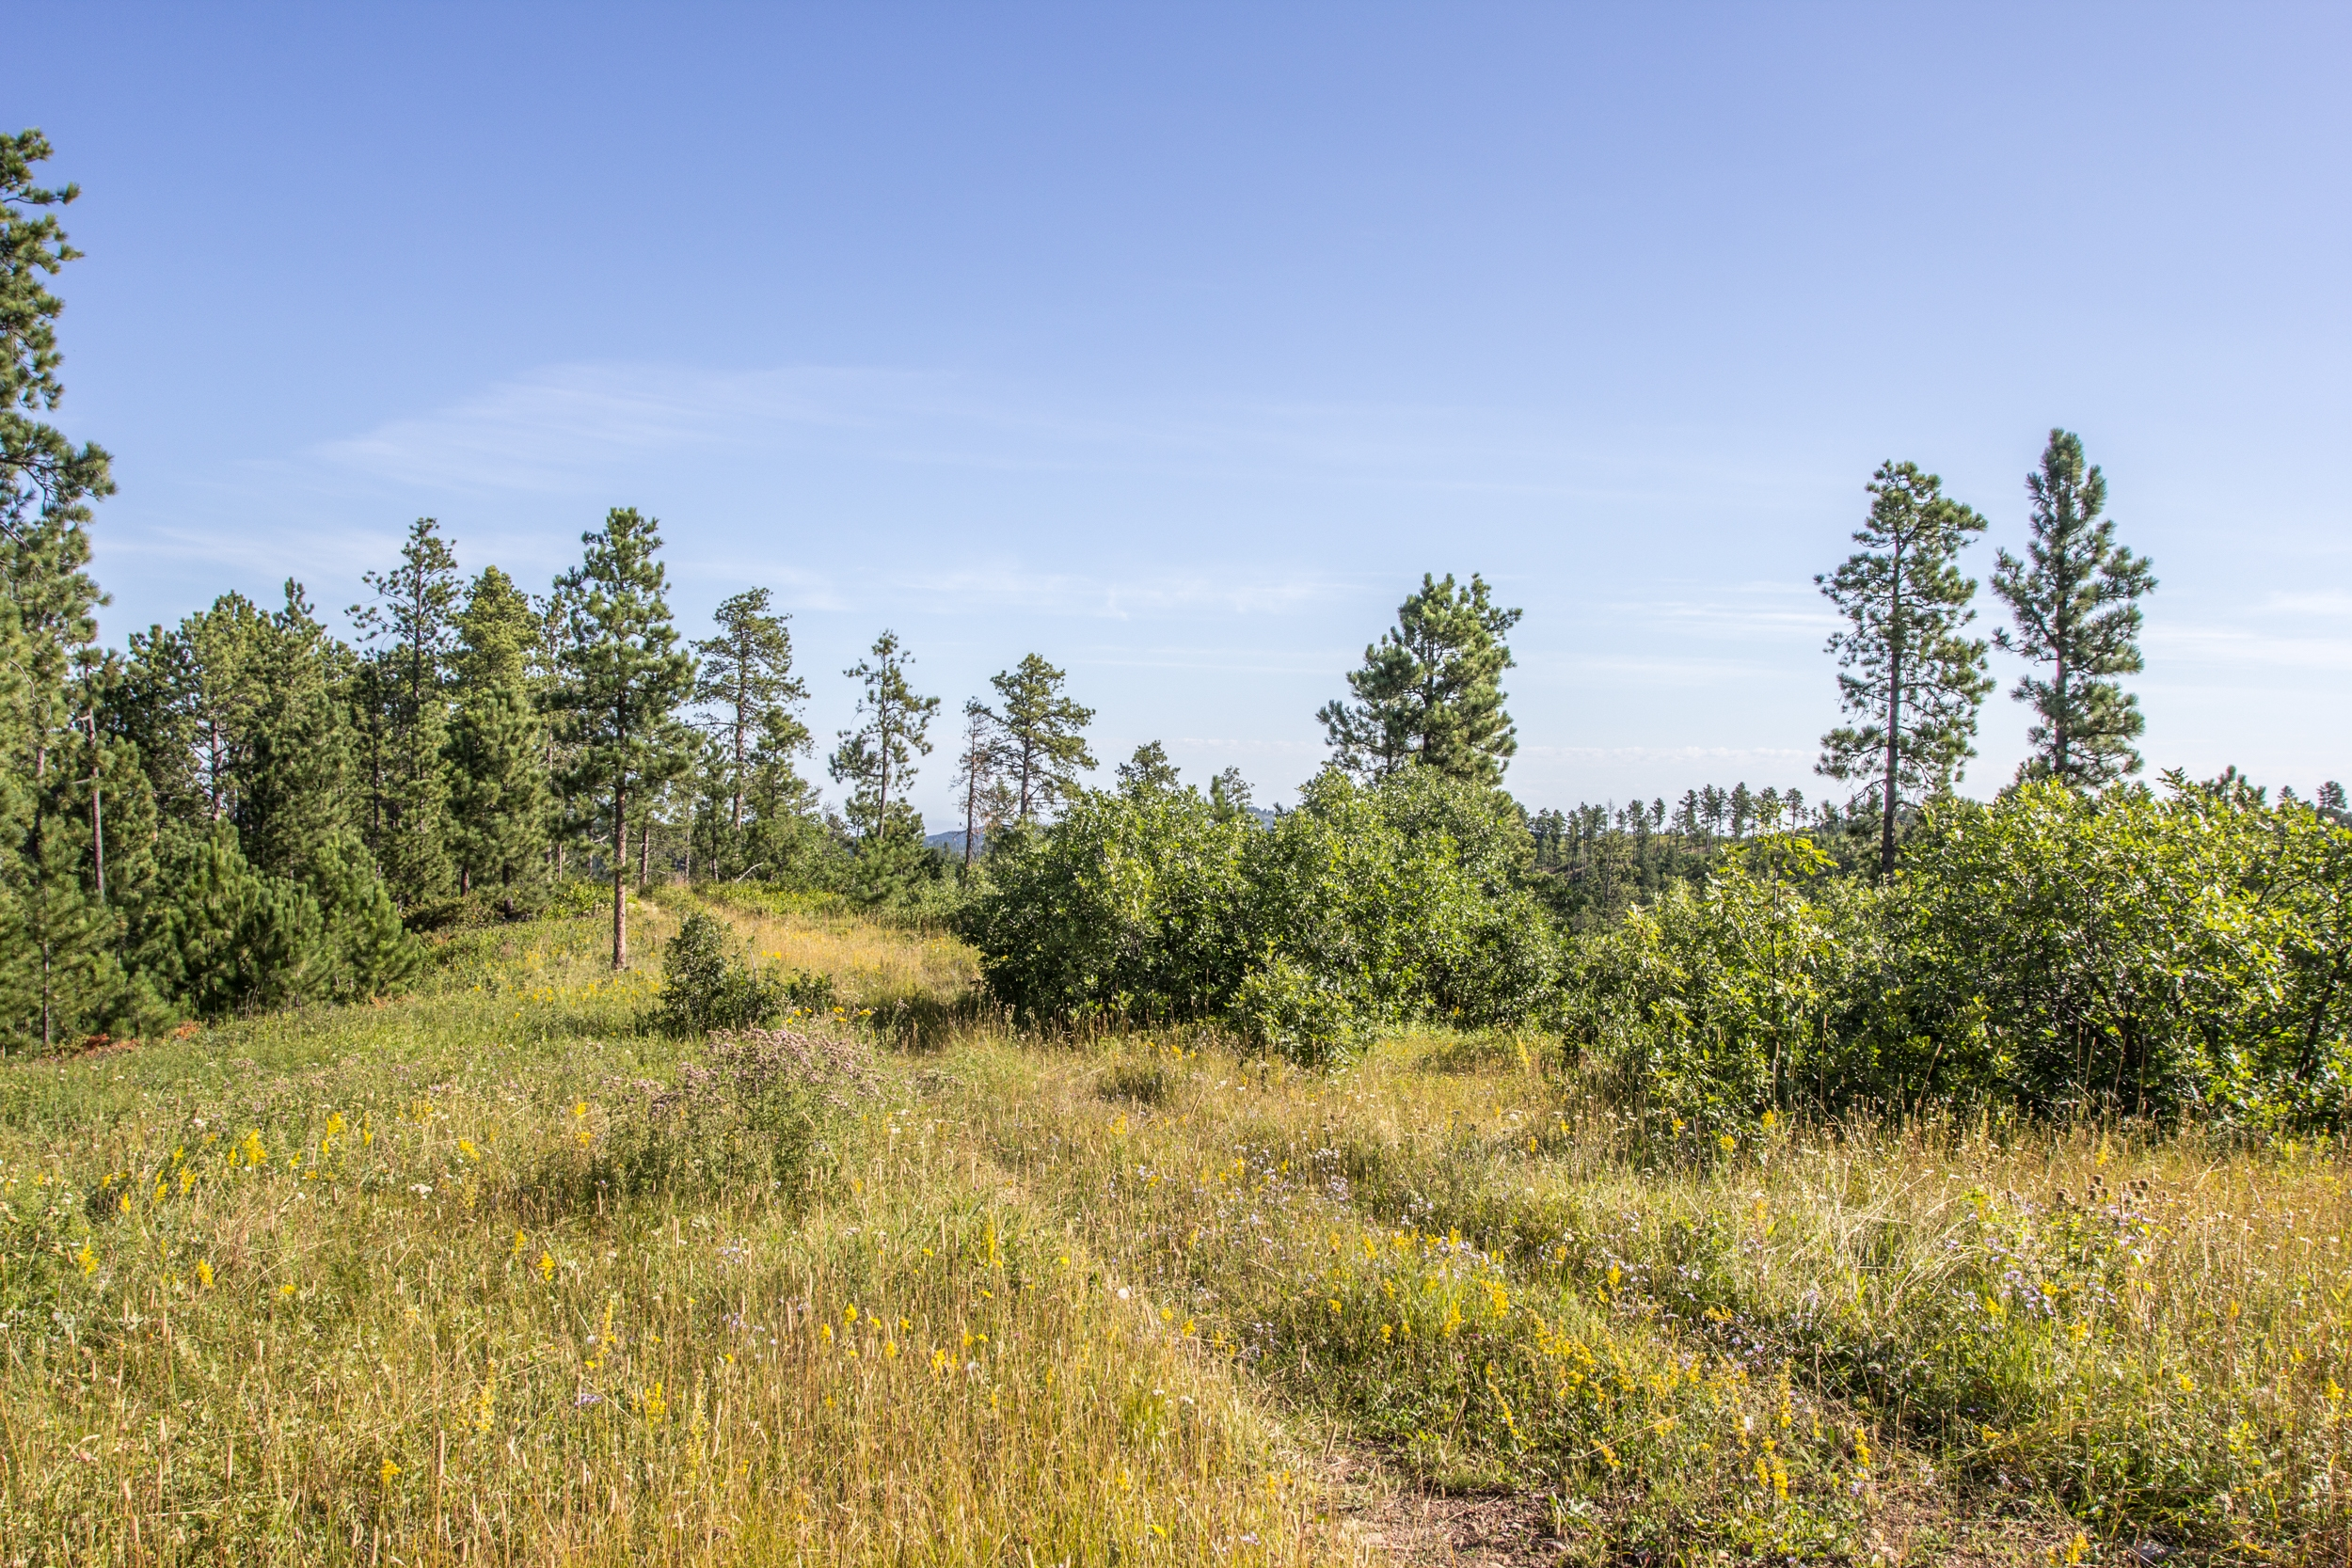 36.22 Acres - No Covenants - Minutes from Lead